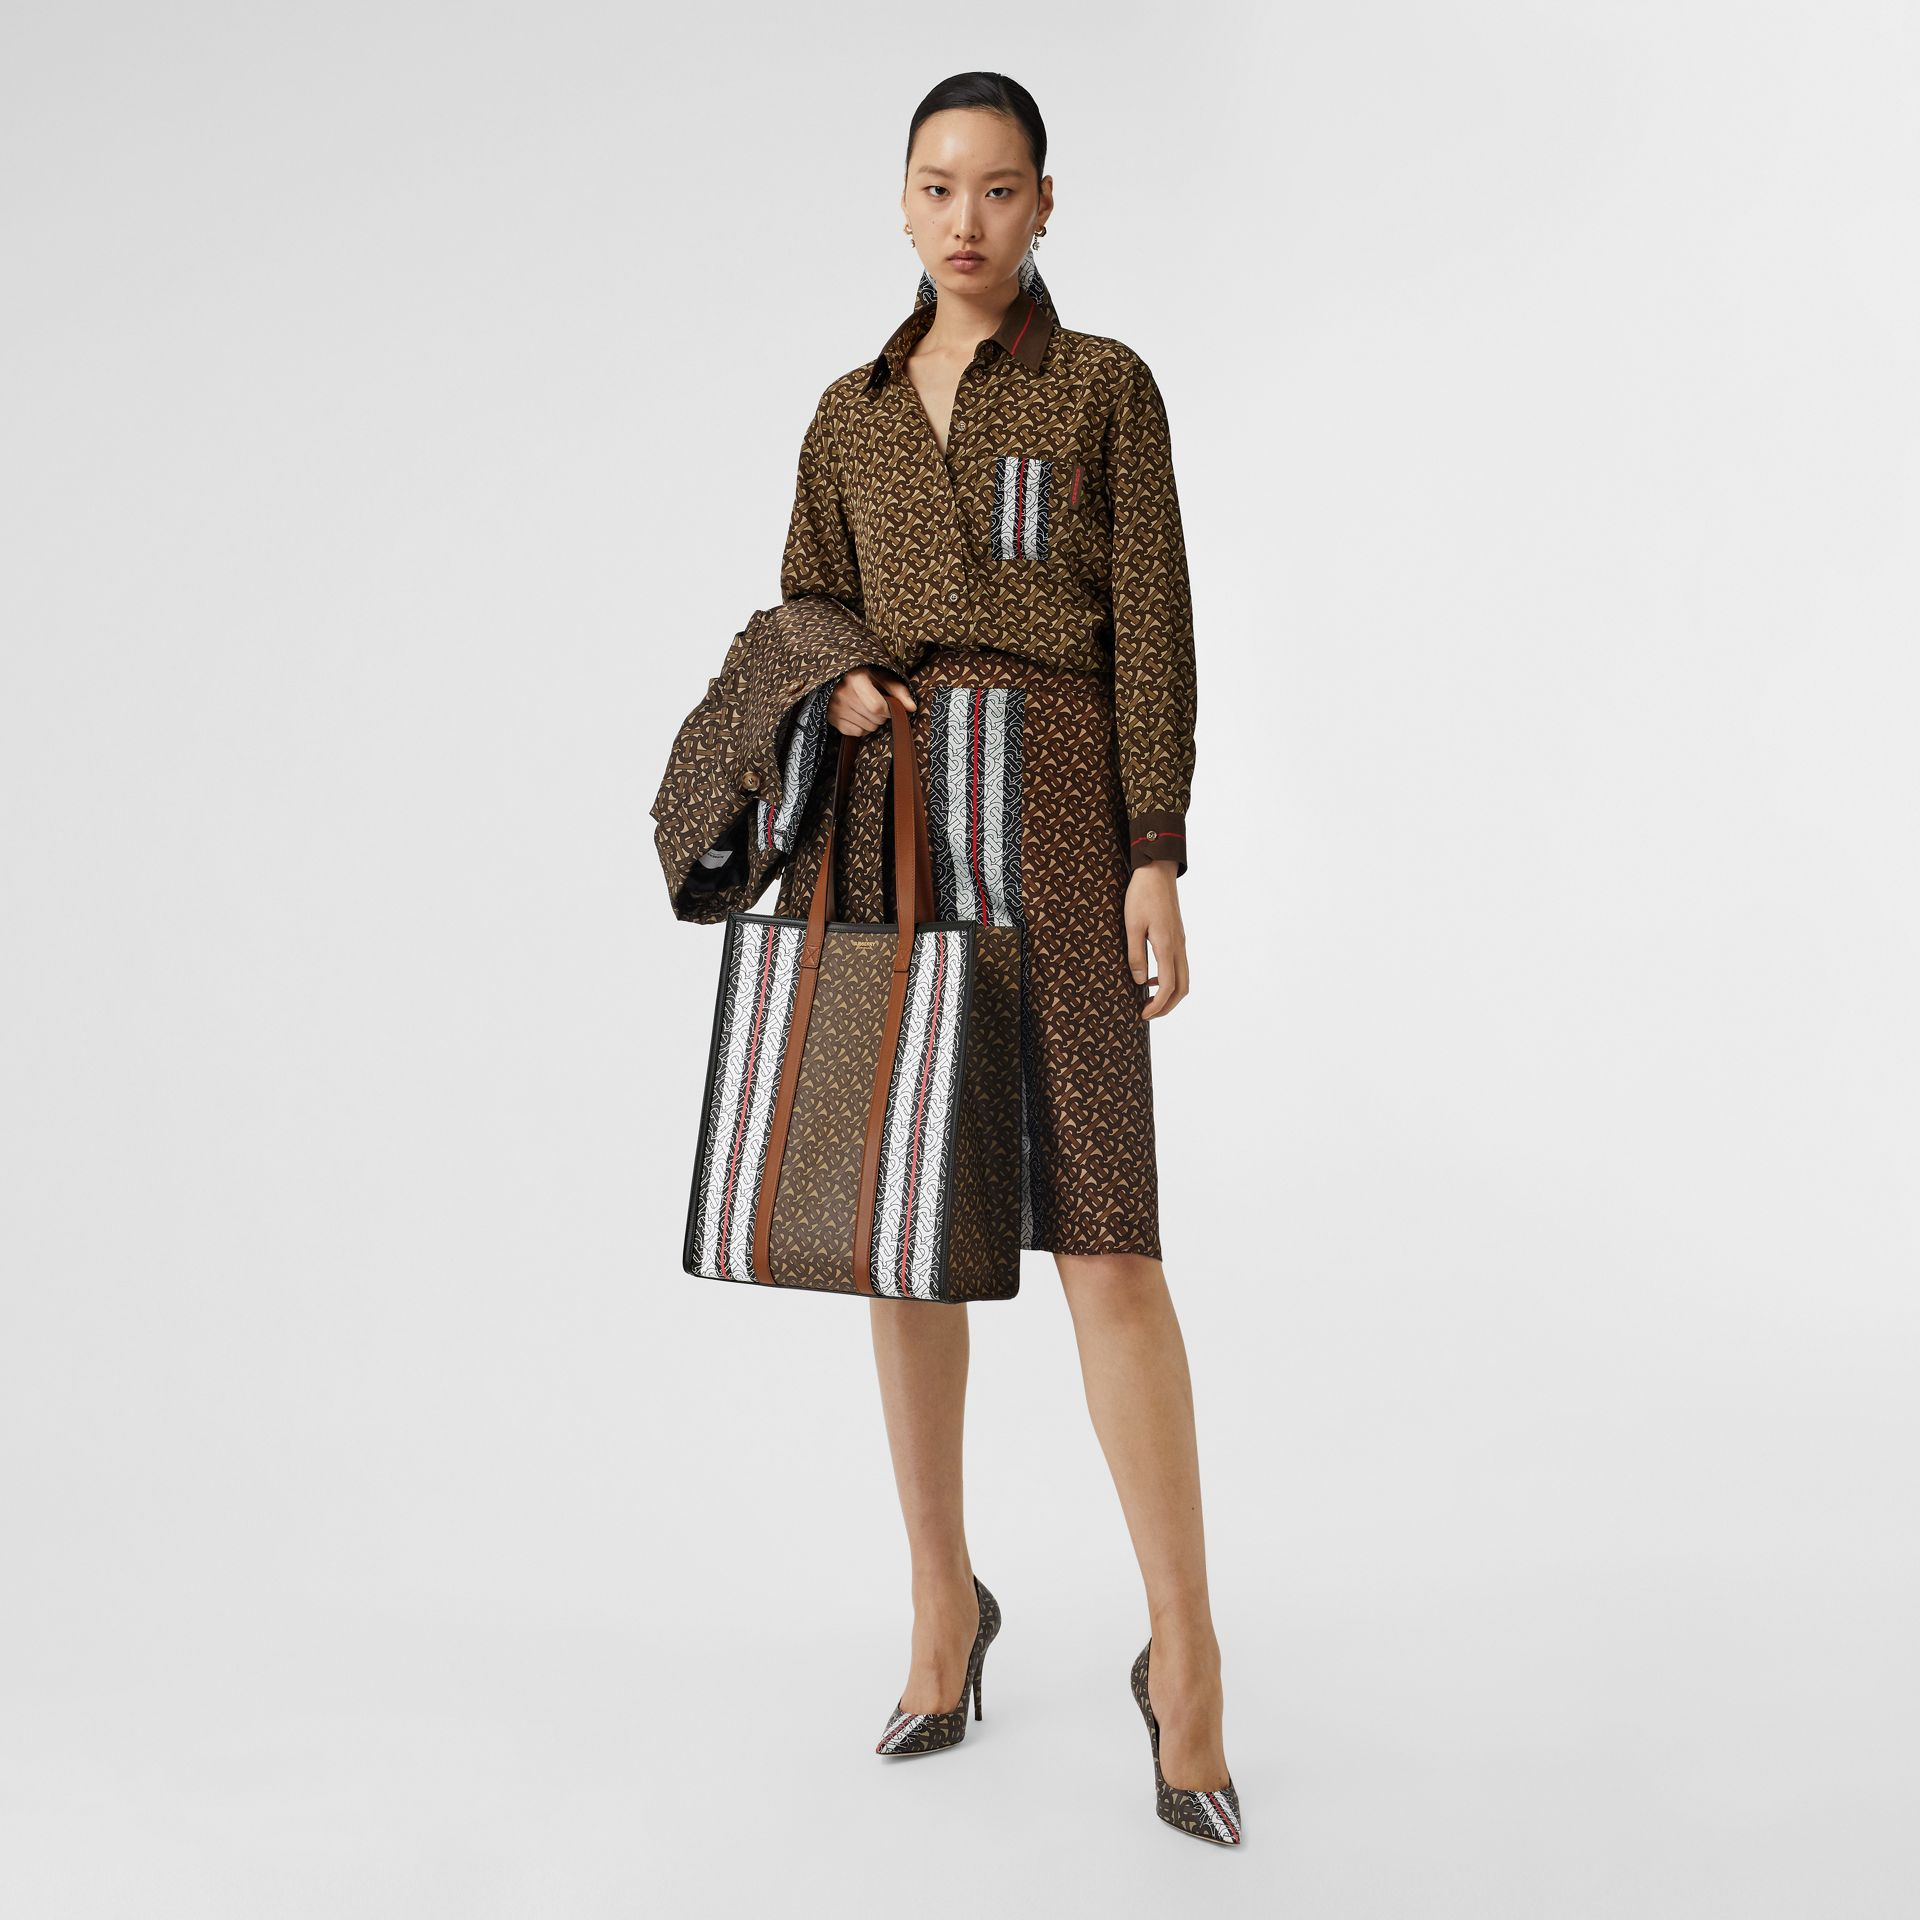 Monogram Stripe Print Silk Oversized Shirt in Bridle Brown - Women | Burberry United States - gallery image 0